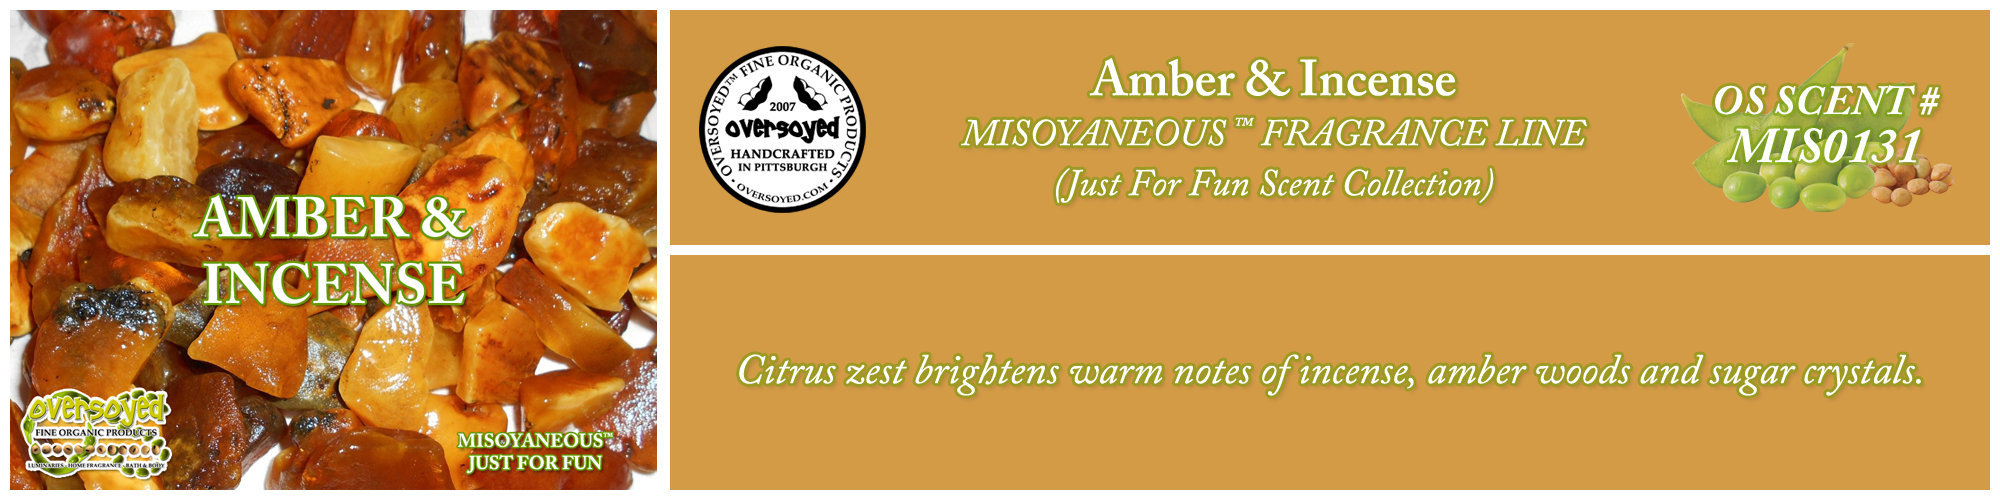 Amber & Incense Handcrafted Products Collection